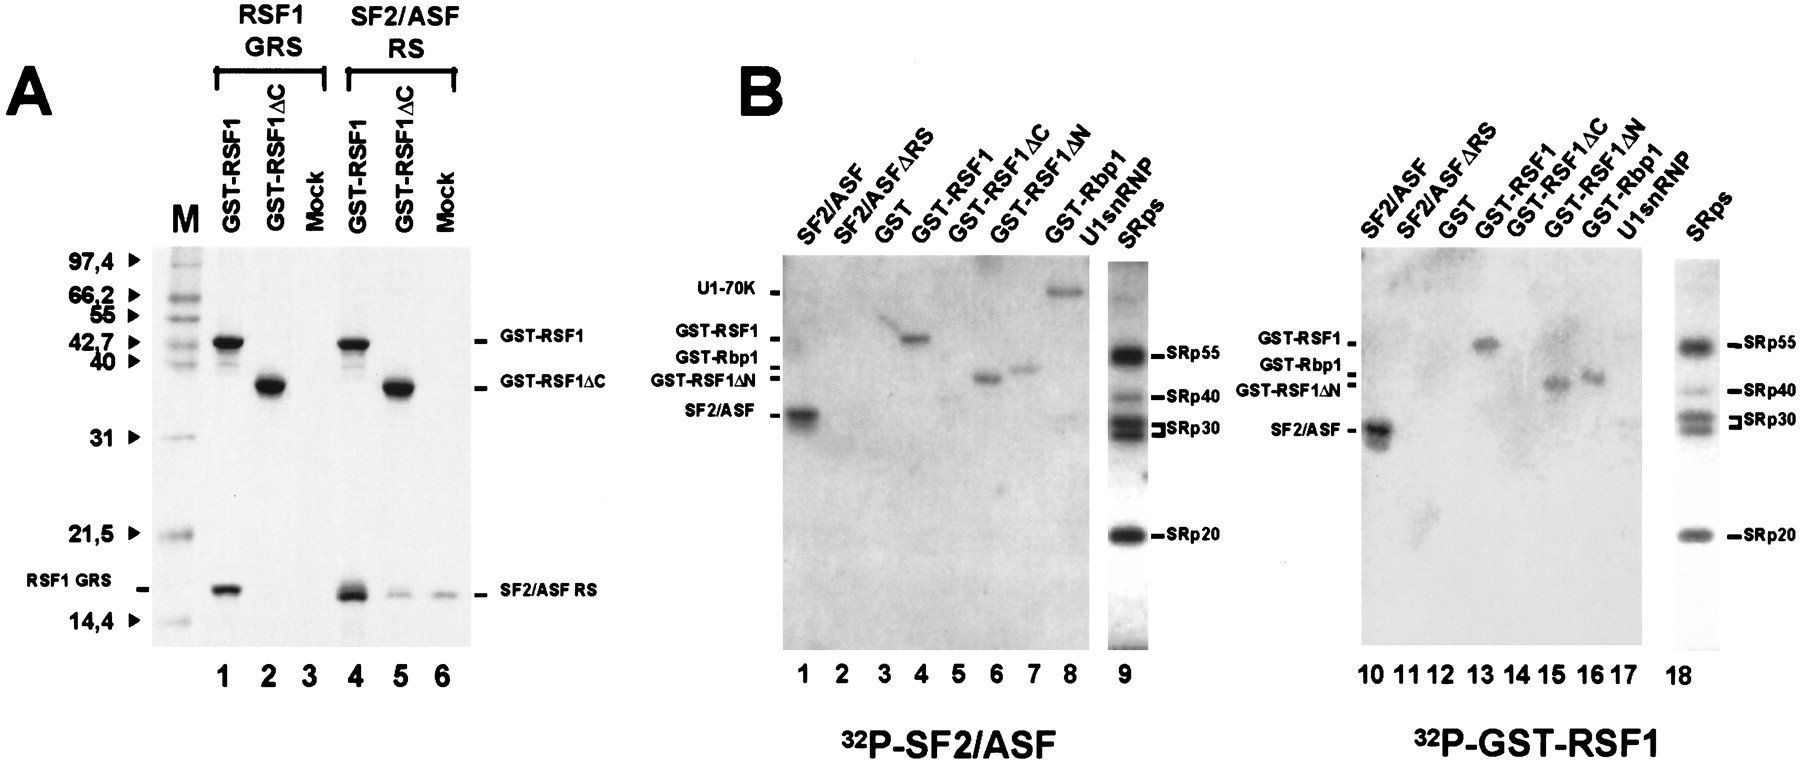 Antagonism between RSF1 and SR proteins for both splice-site